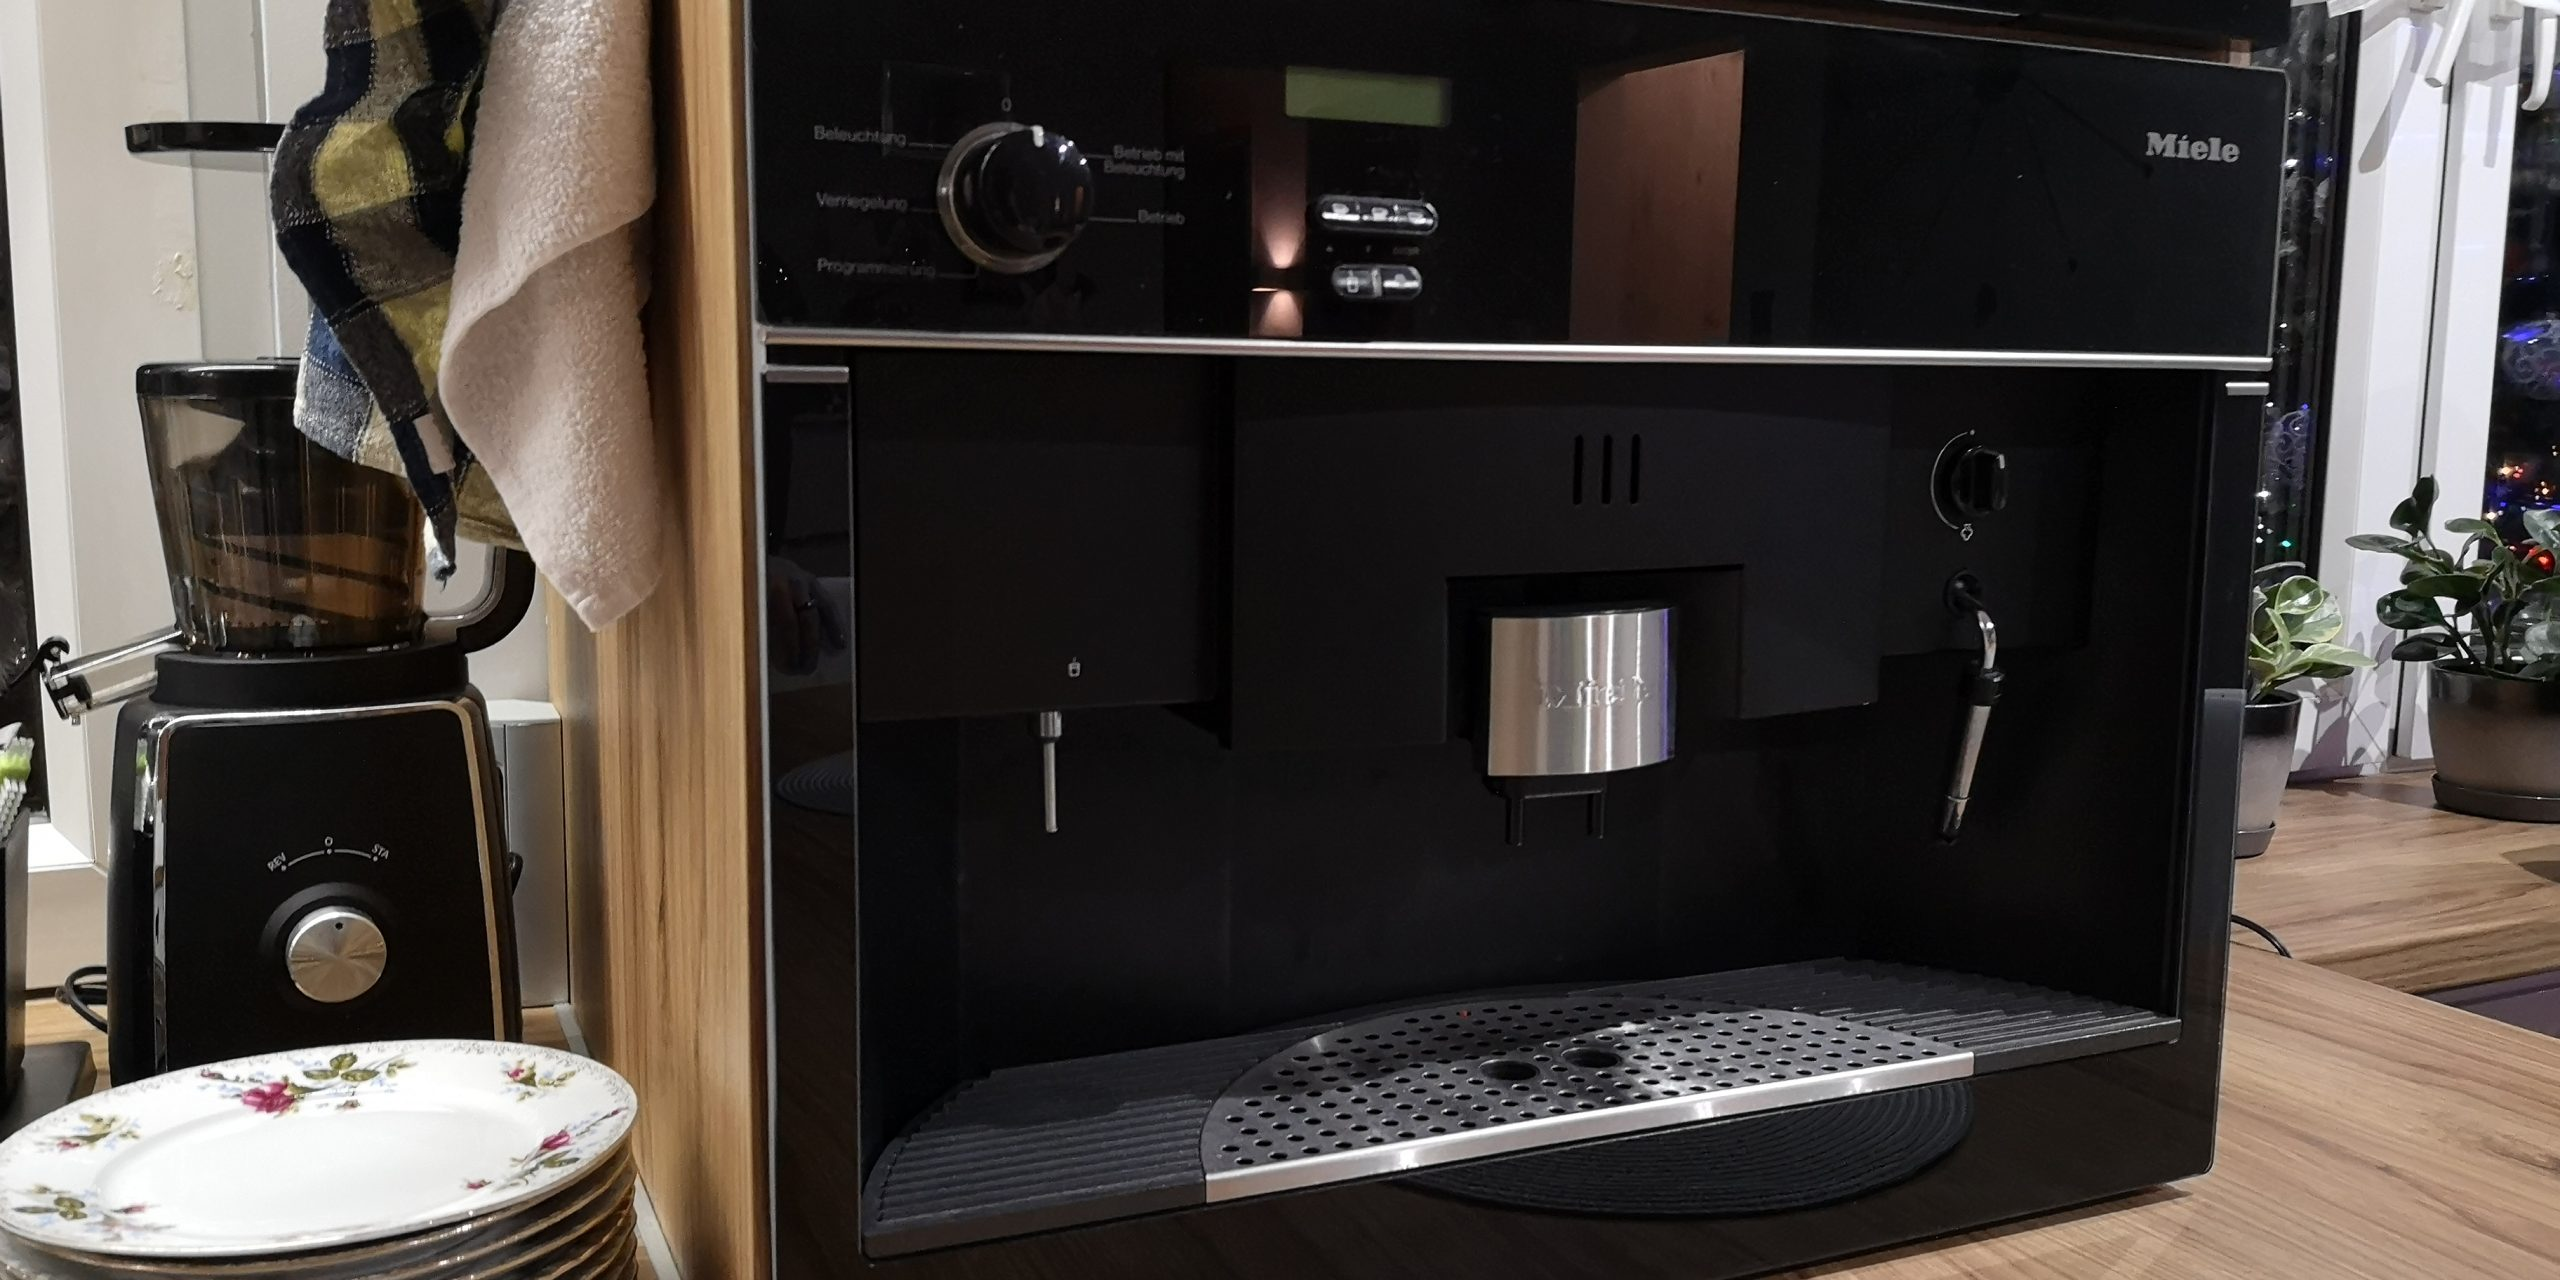 MIELE Integrated Coffee machine